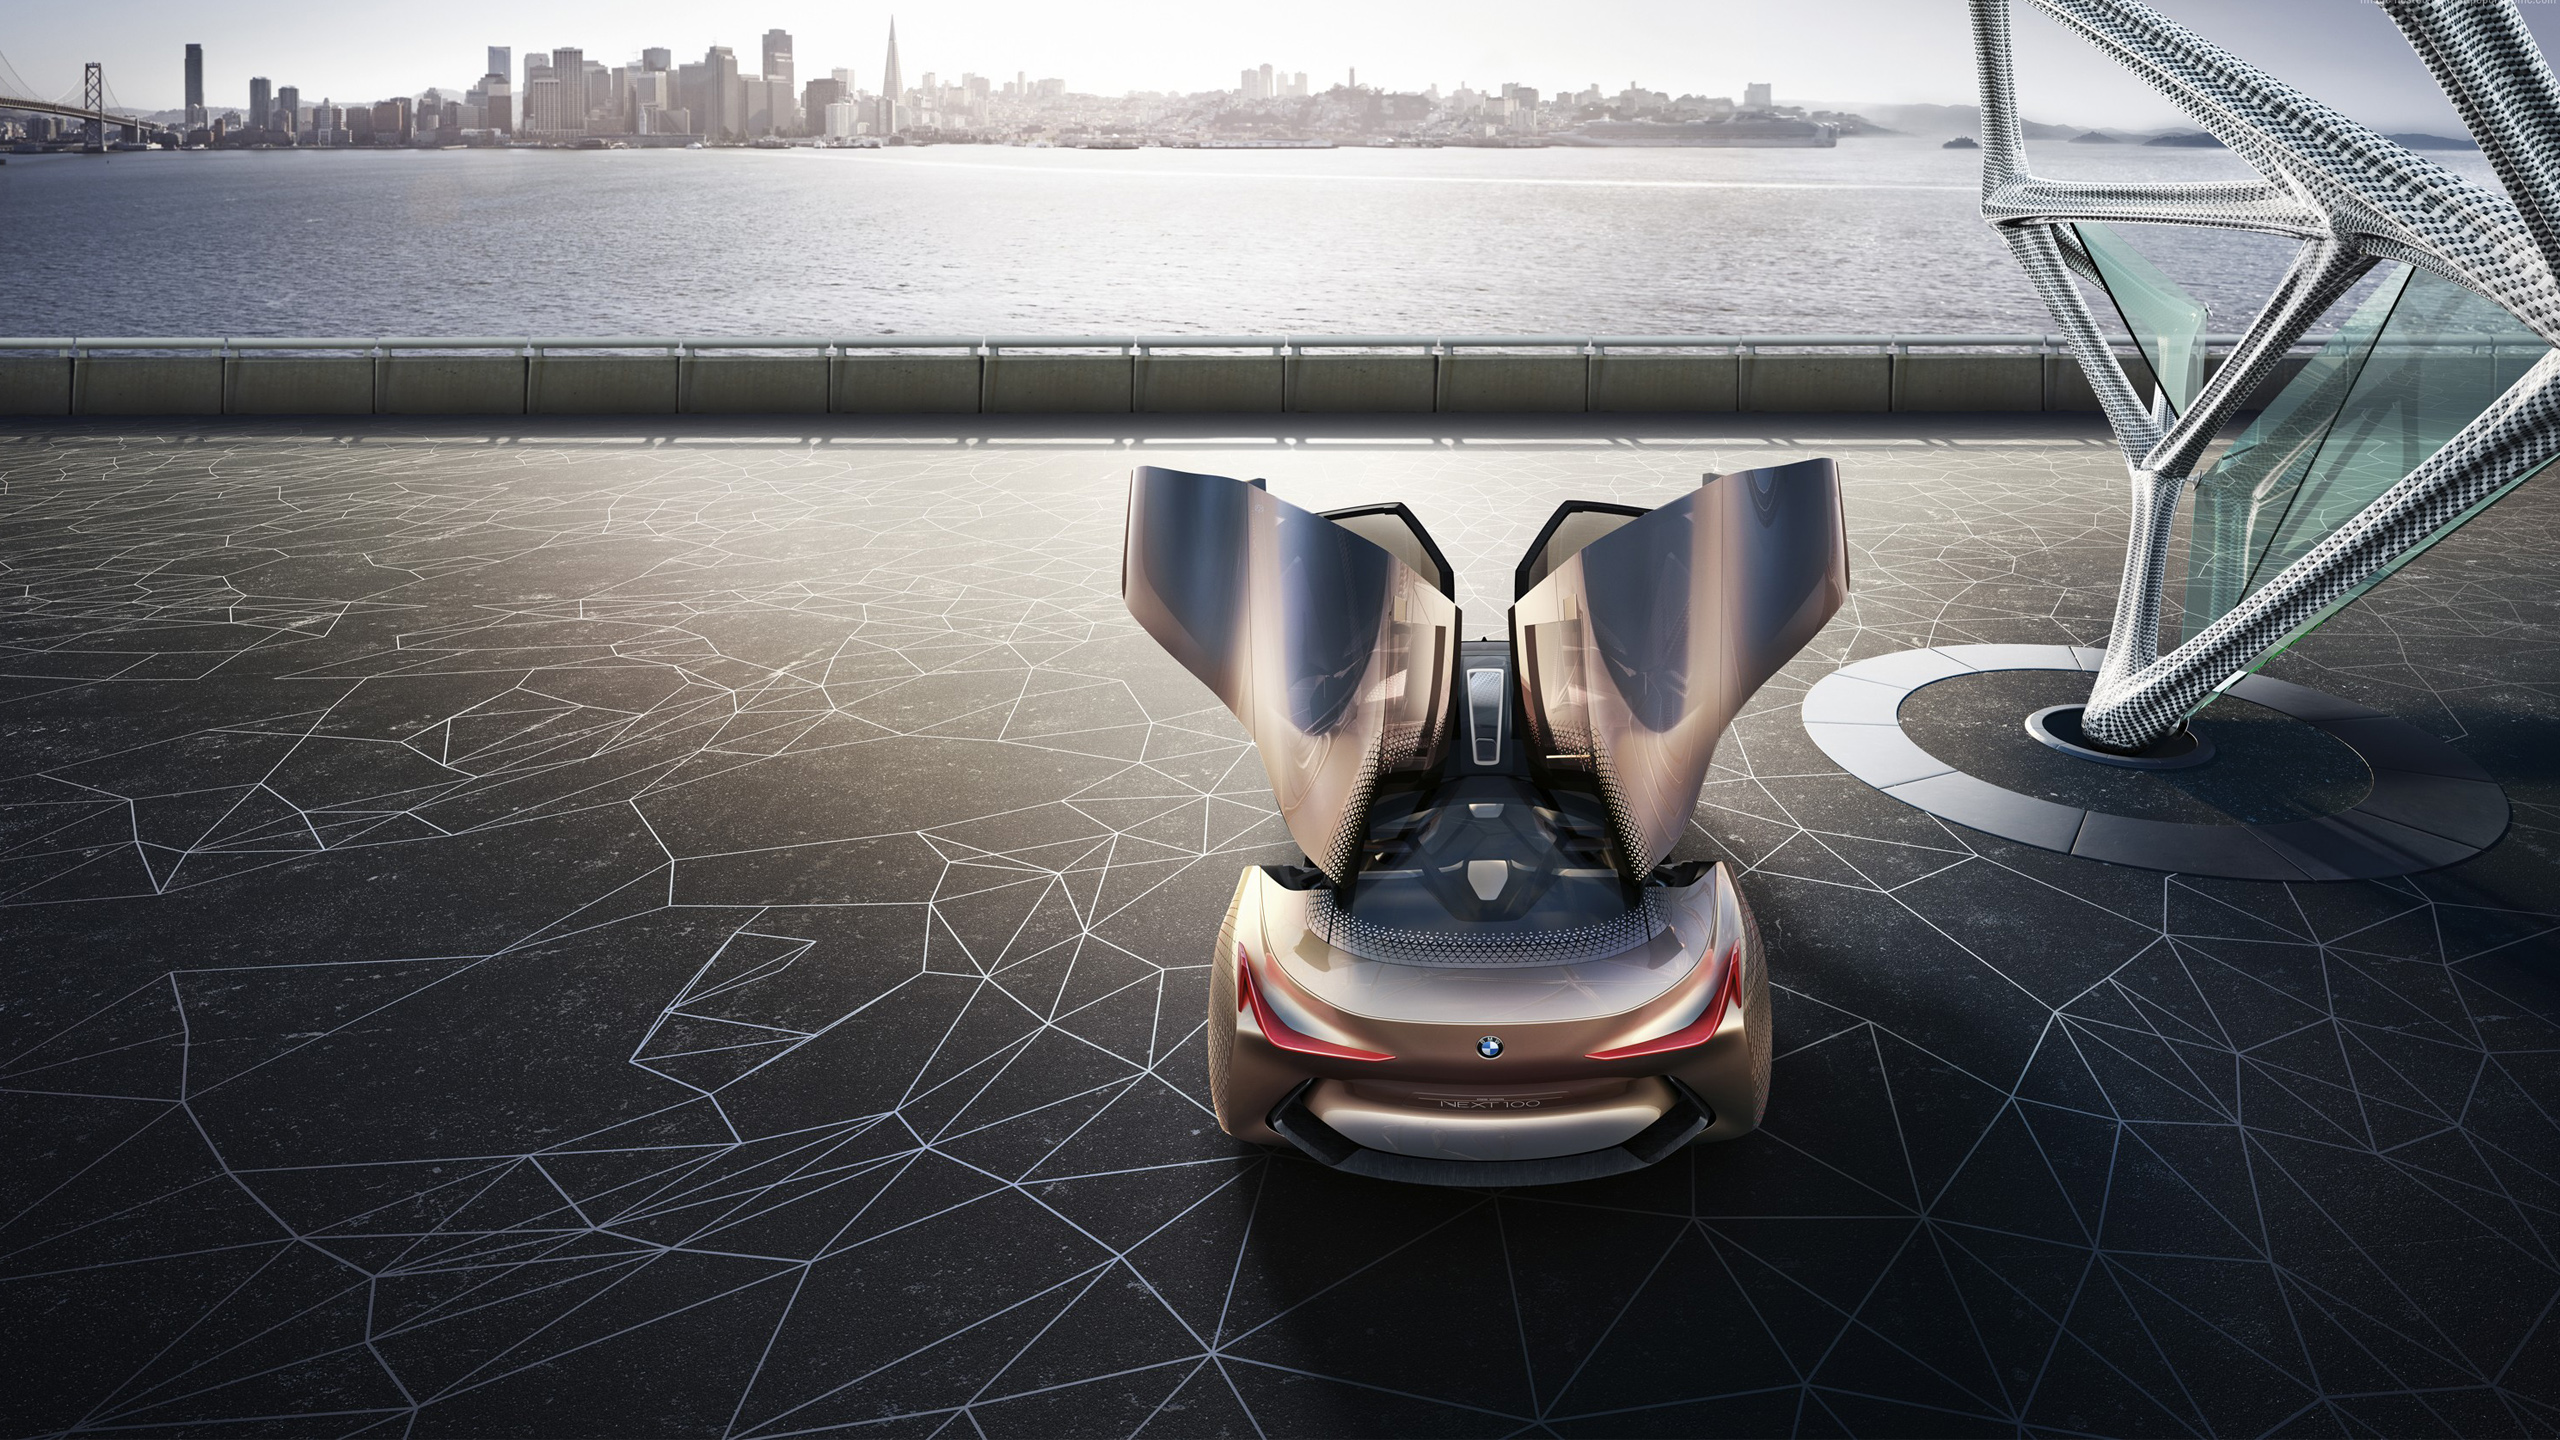 HD Bmw Vision Next 100 Hd Wallpapers Images